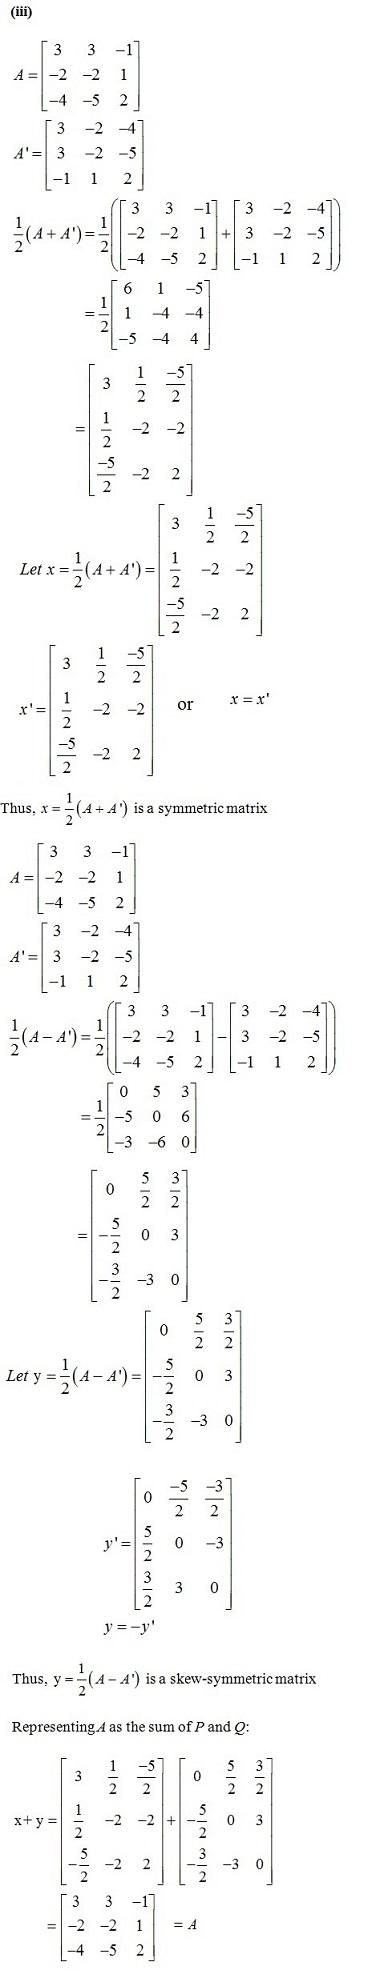 NCERT Solutions for CBSE Class 12 Mathematics ‒ Chapter 3: Matrices (Exercise 3.3, Solution 10 iii)